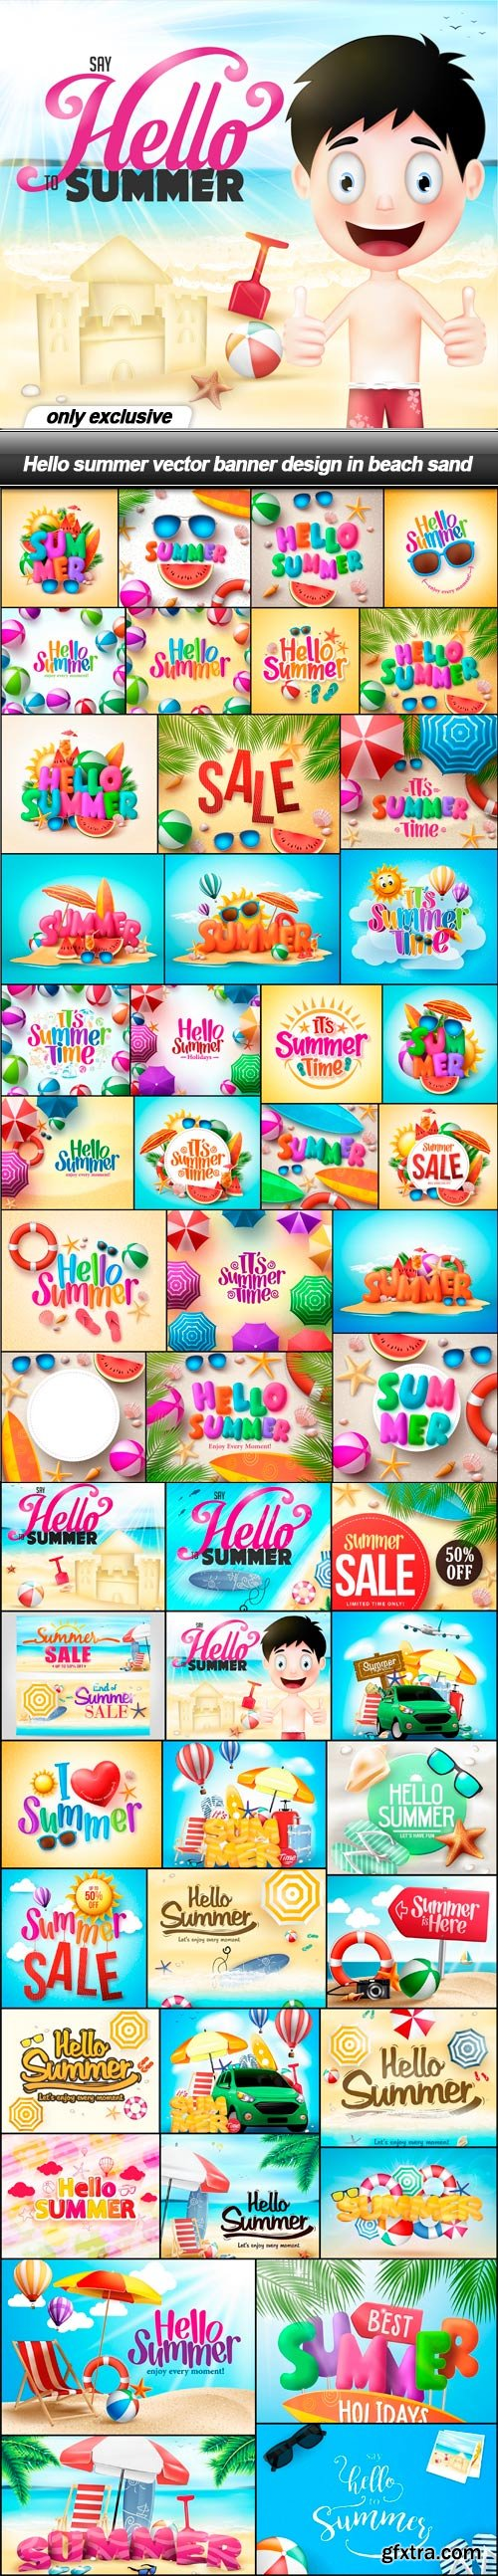 Hello summer vector banner design in beach sand - 50 EPS